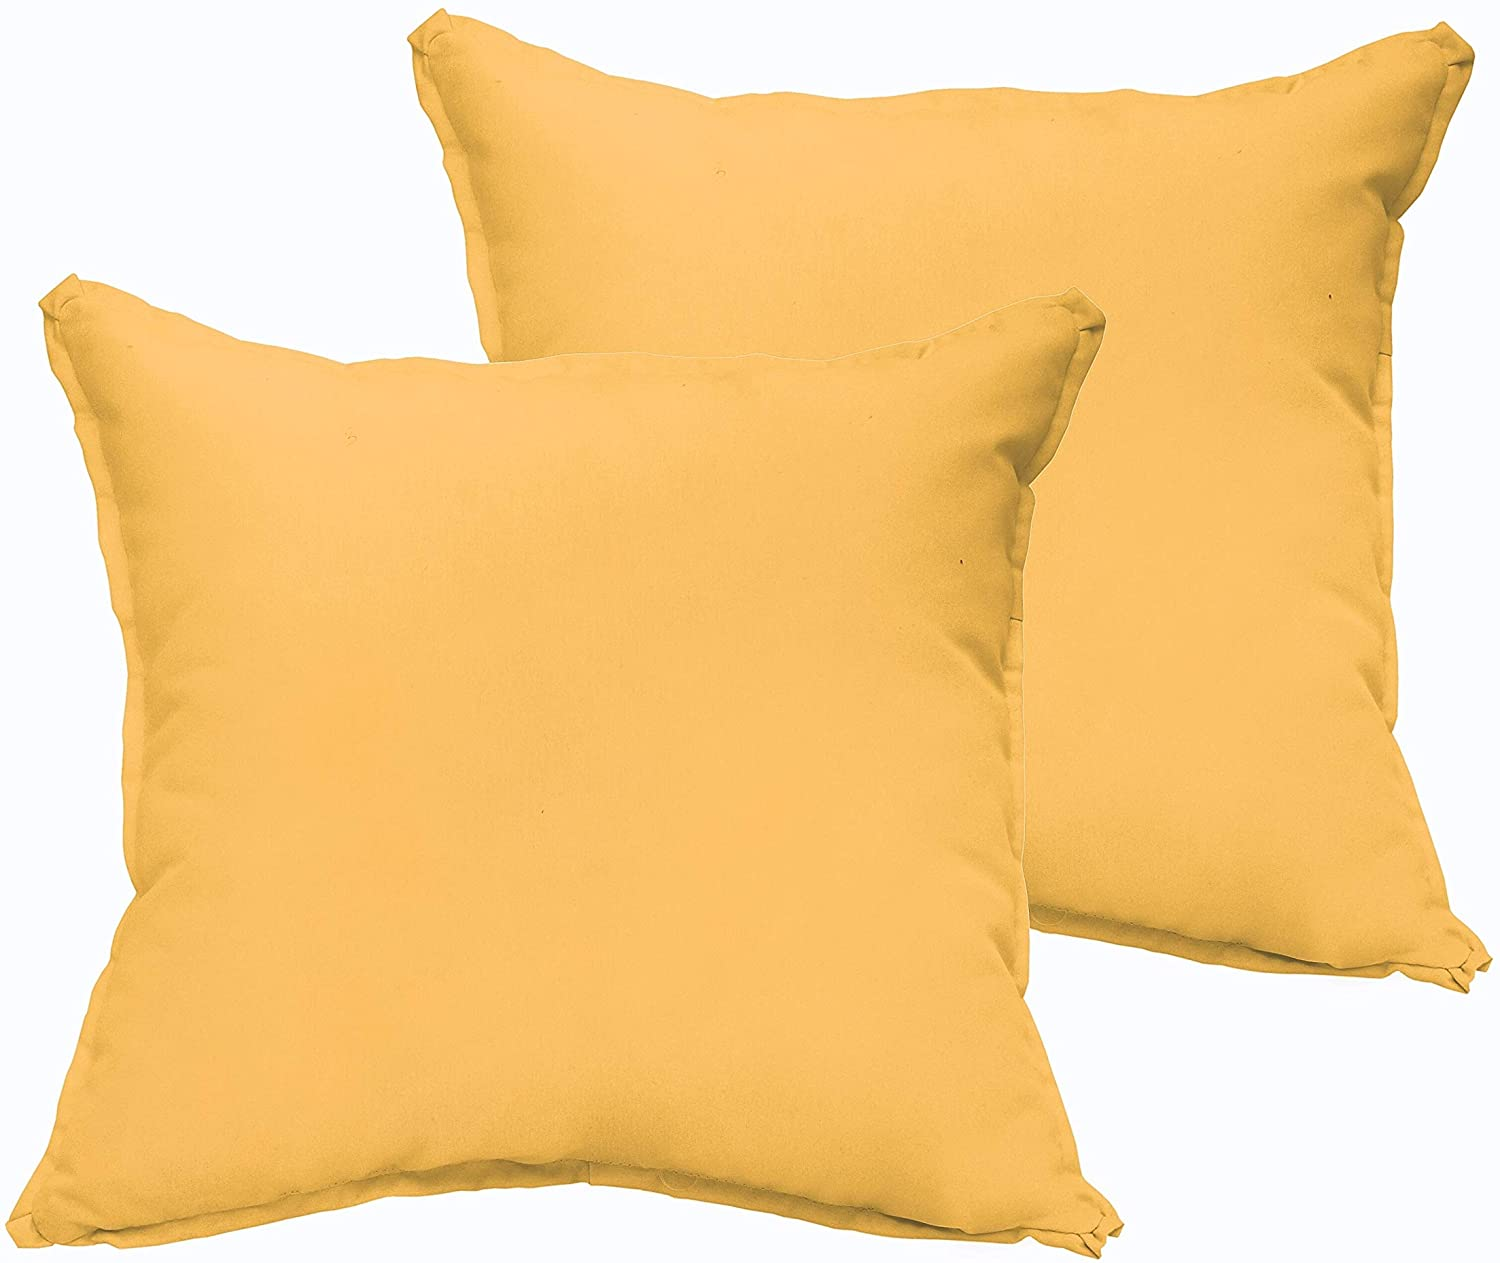 Butter Yellow Indoor/Outdoor 22 inch Square Pillow Set Solid Traditional Transitional Polyester Fade Resistant Made USA Uv Water